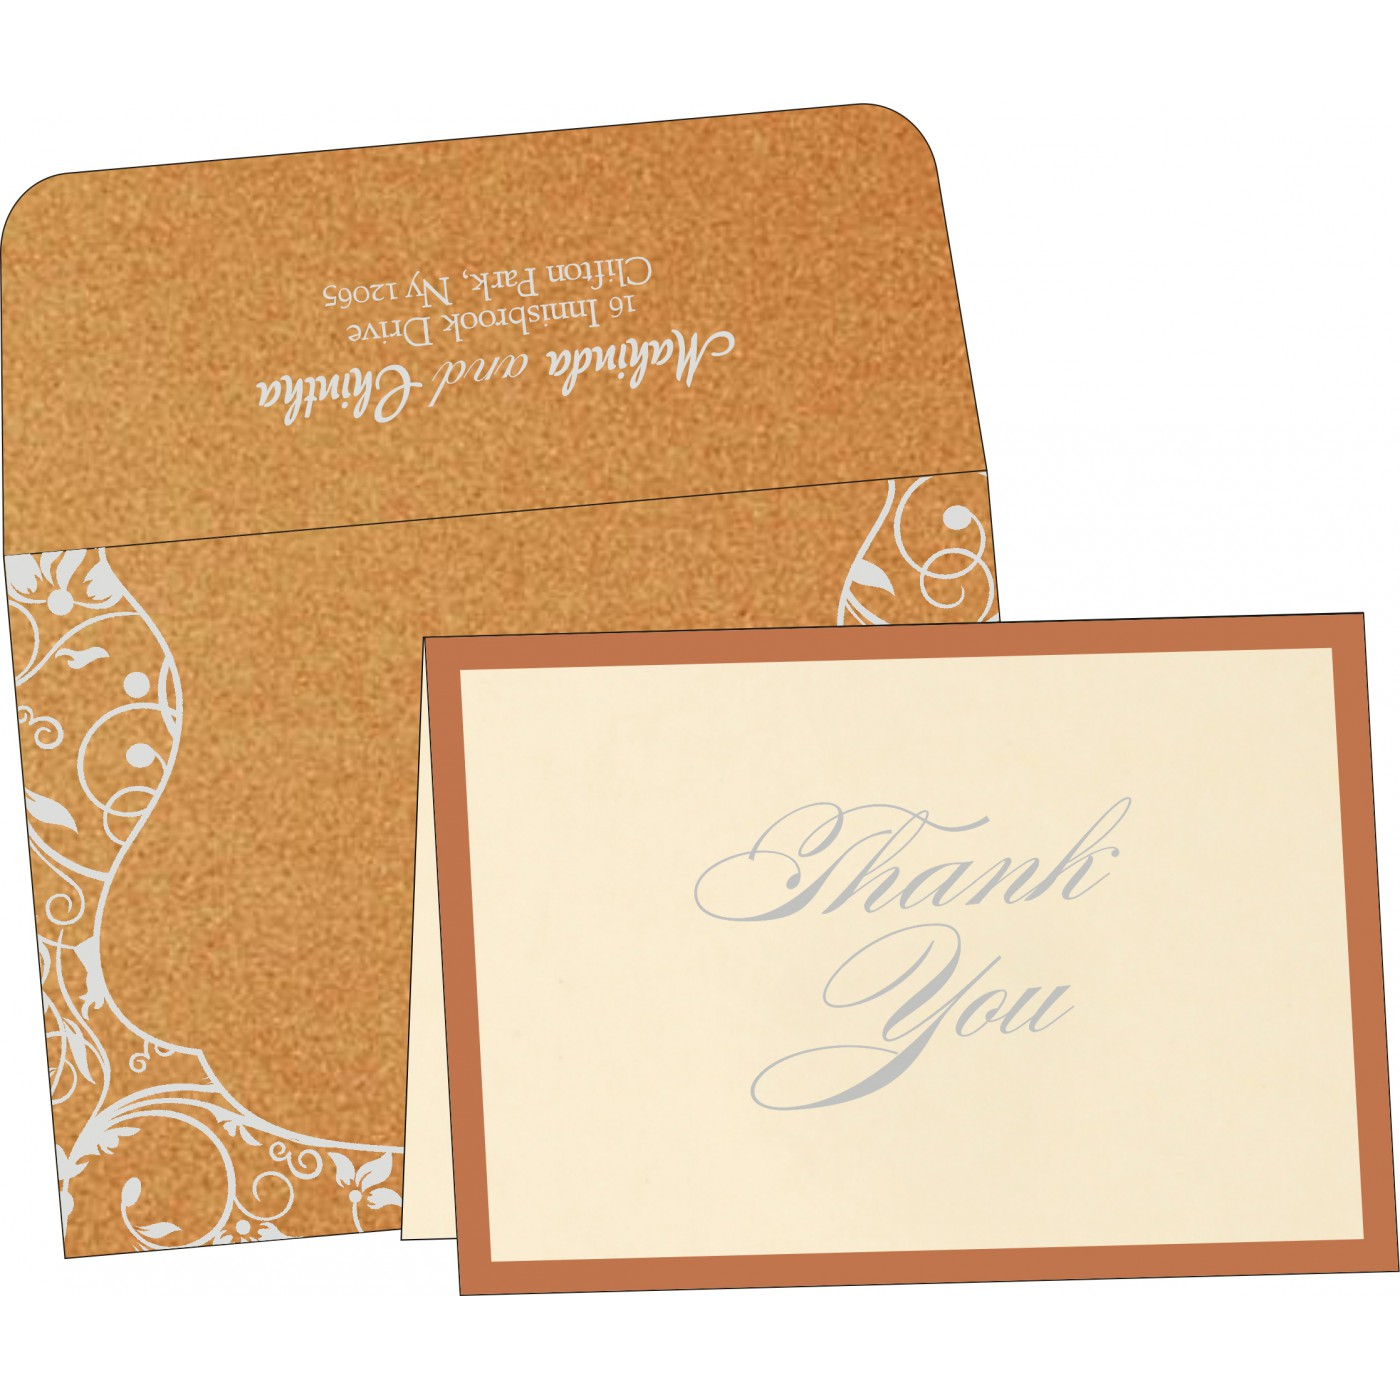 Thank You Cards - TYC-8229O